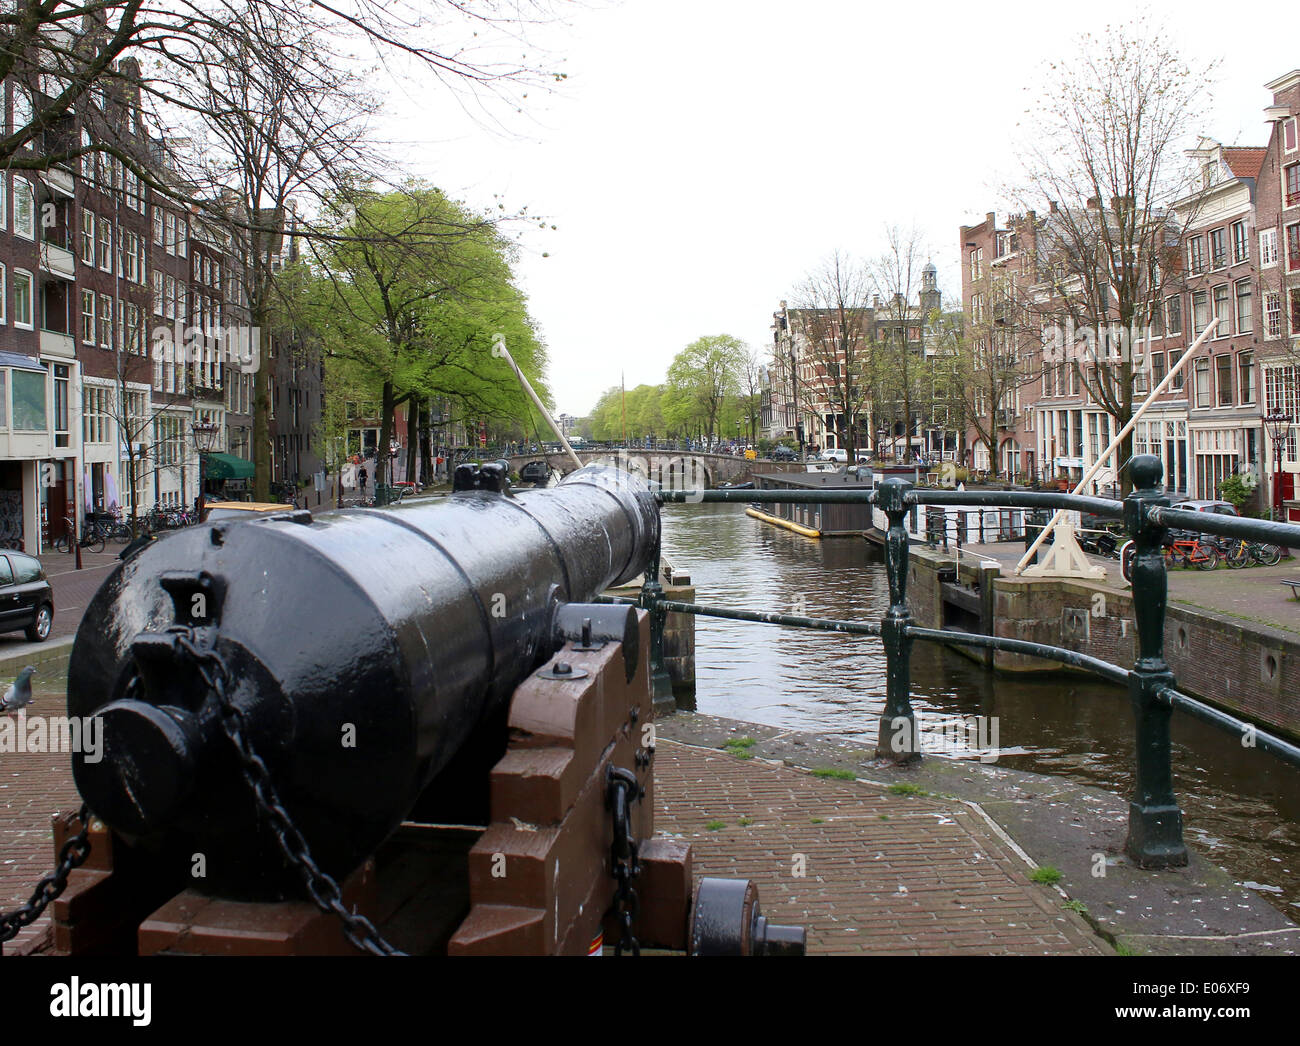 Old 19th century cannon at Prinsengracht canal in Amsterdam, The Netherlands - Stock Image